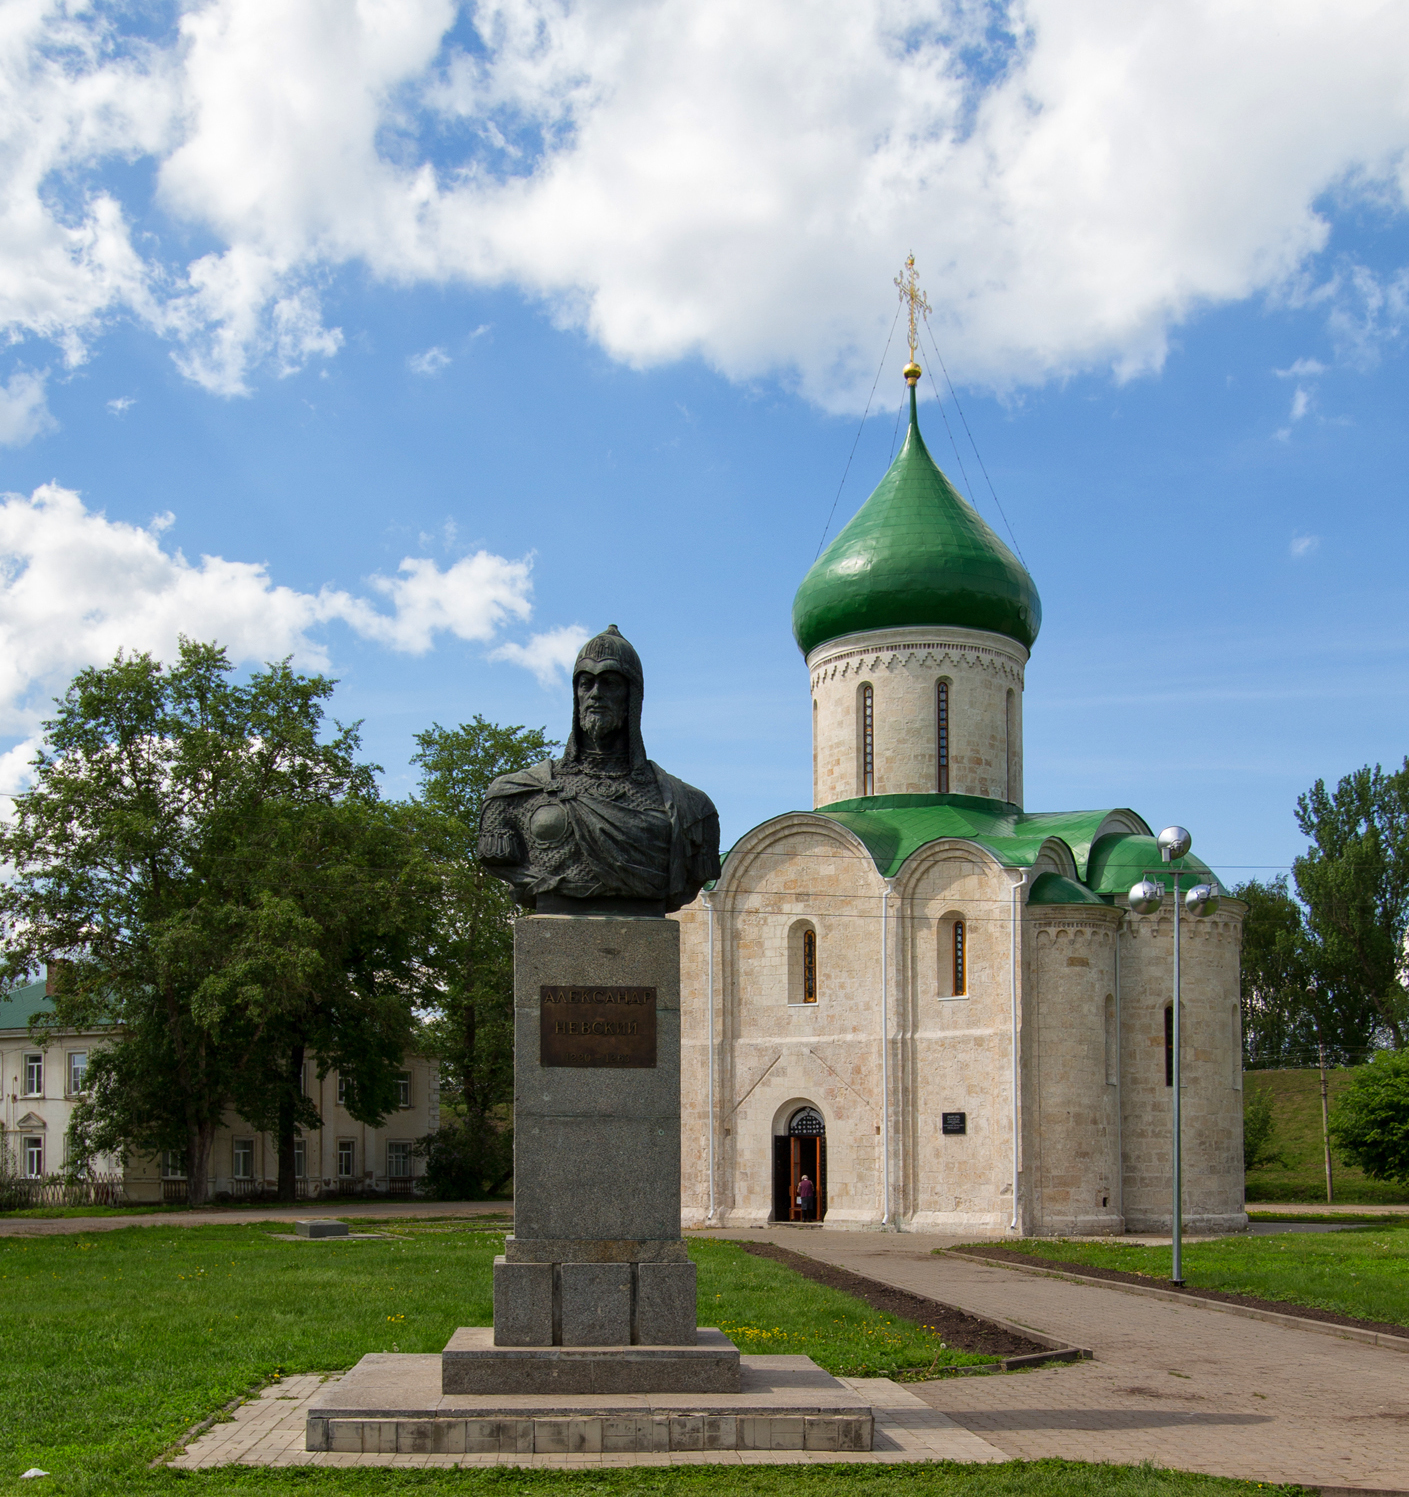 The pearl of Pereslavl-Zalessky is the Transfiguration Cathedral